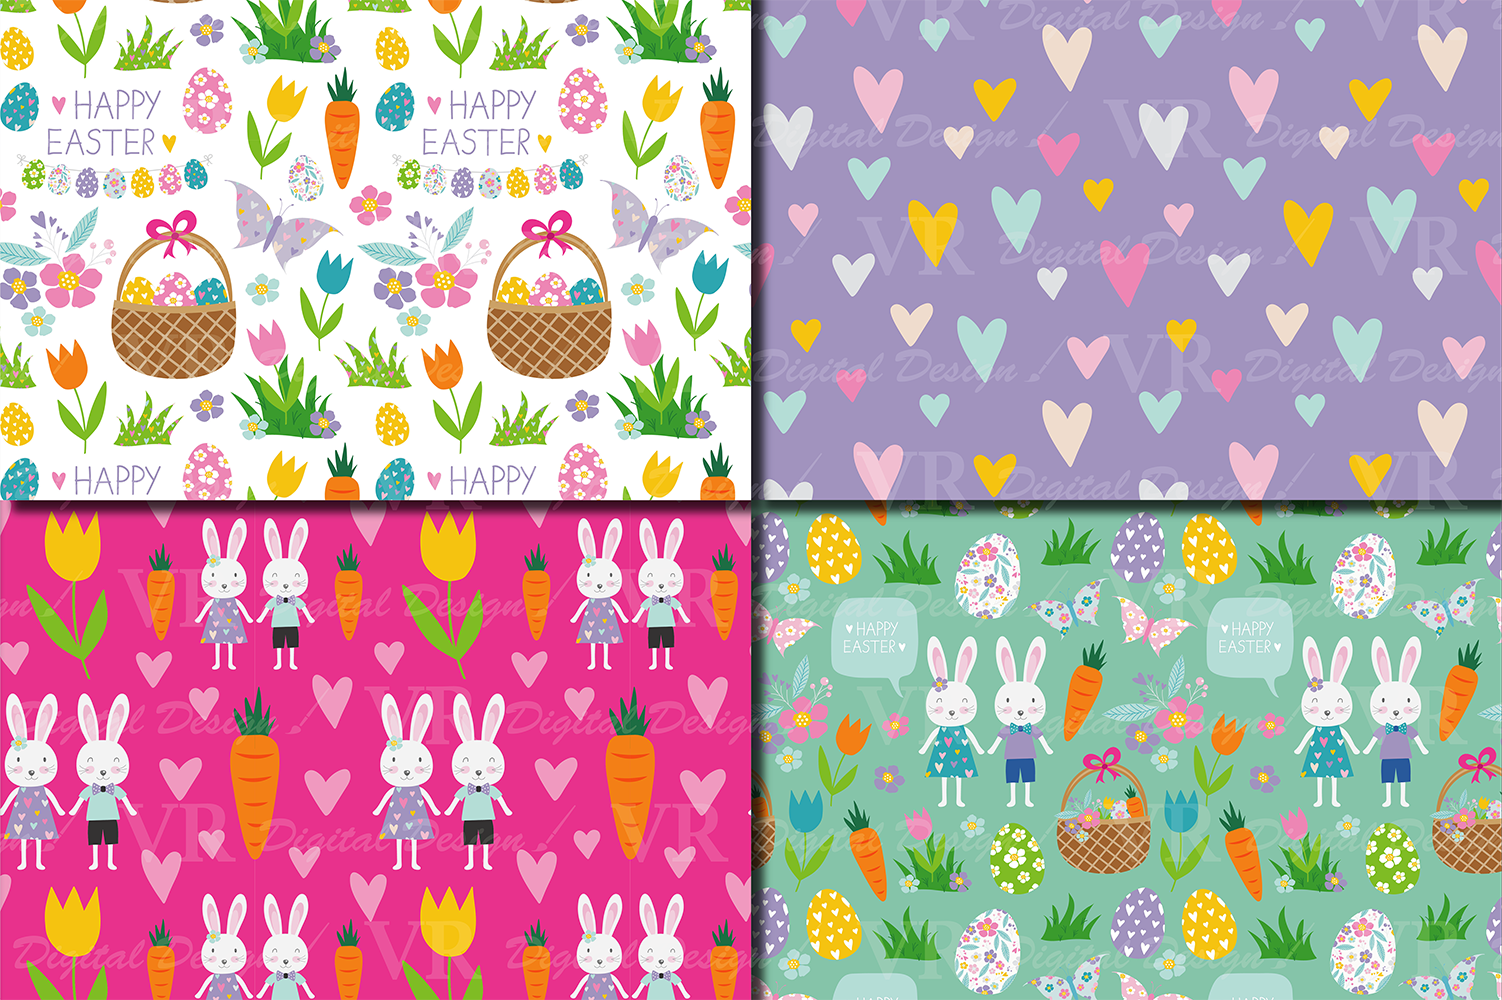 Easter Bunny Digital Paper / Bright Easter Seamless Patterns with bunnies, flowers and Easter eggs / Scrapbooking paper example image 2